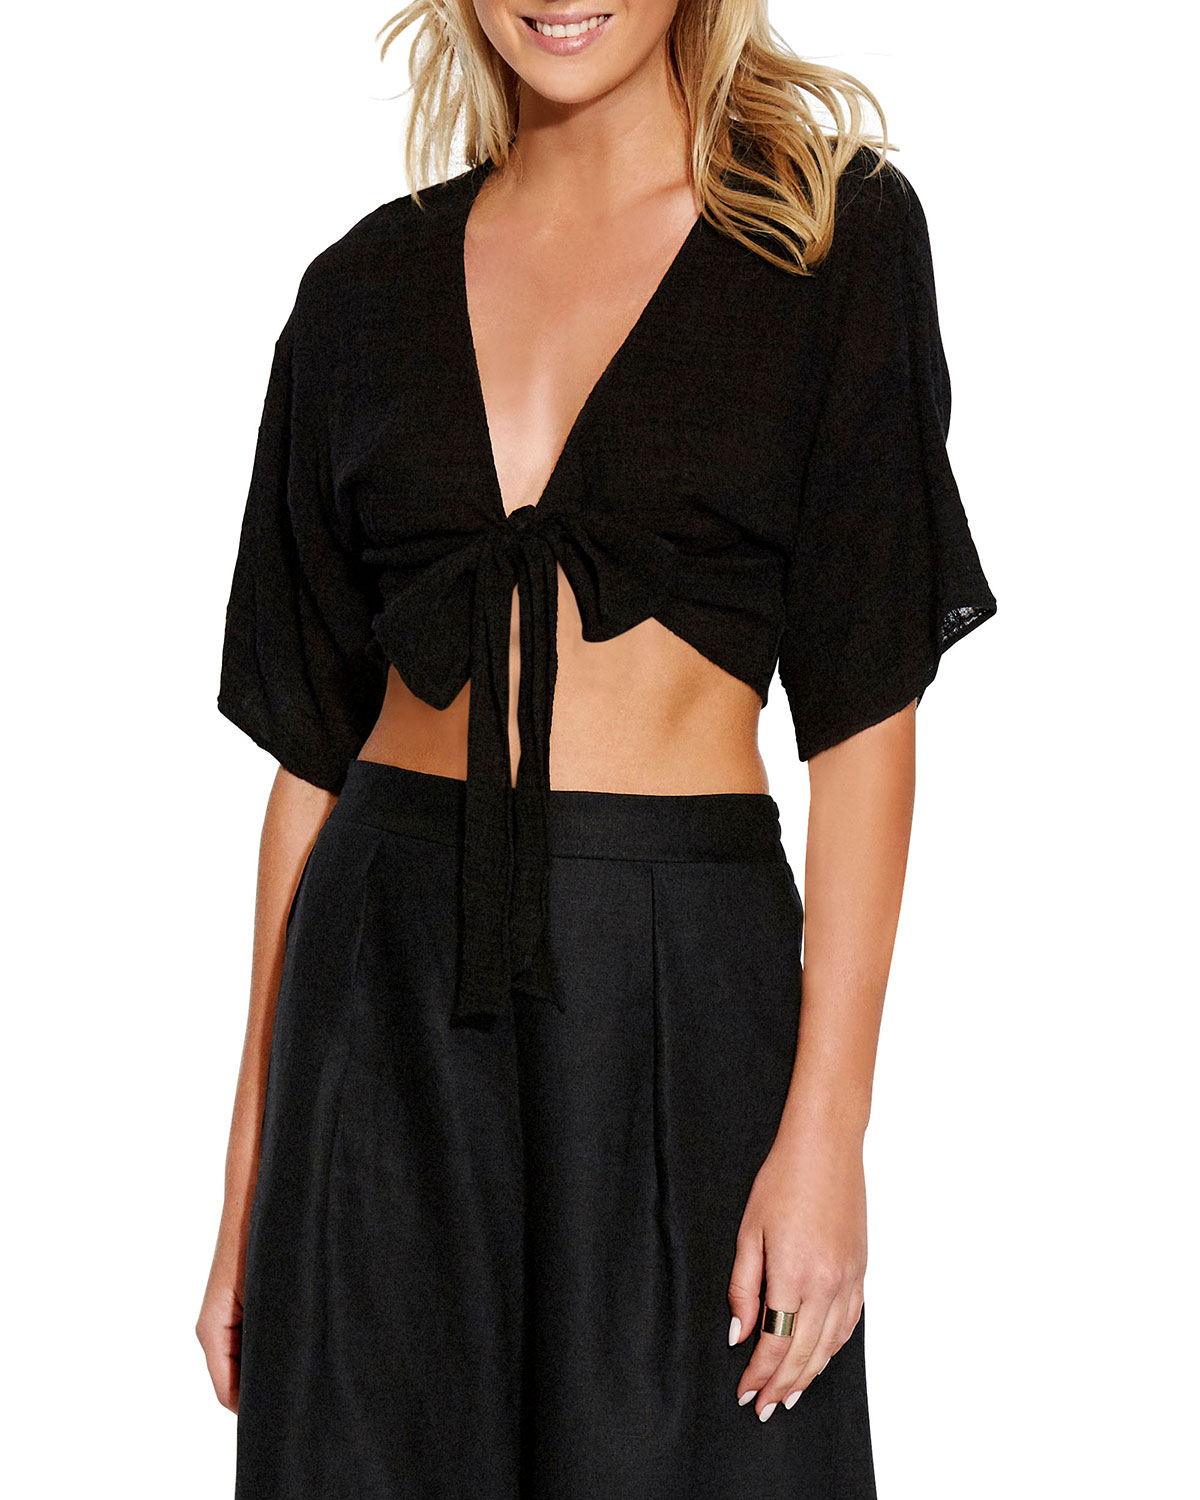 Seafolly Tops Textured Gauze Tie-Front Coverup Top